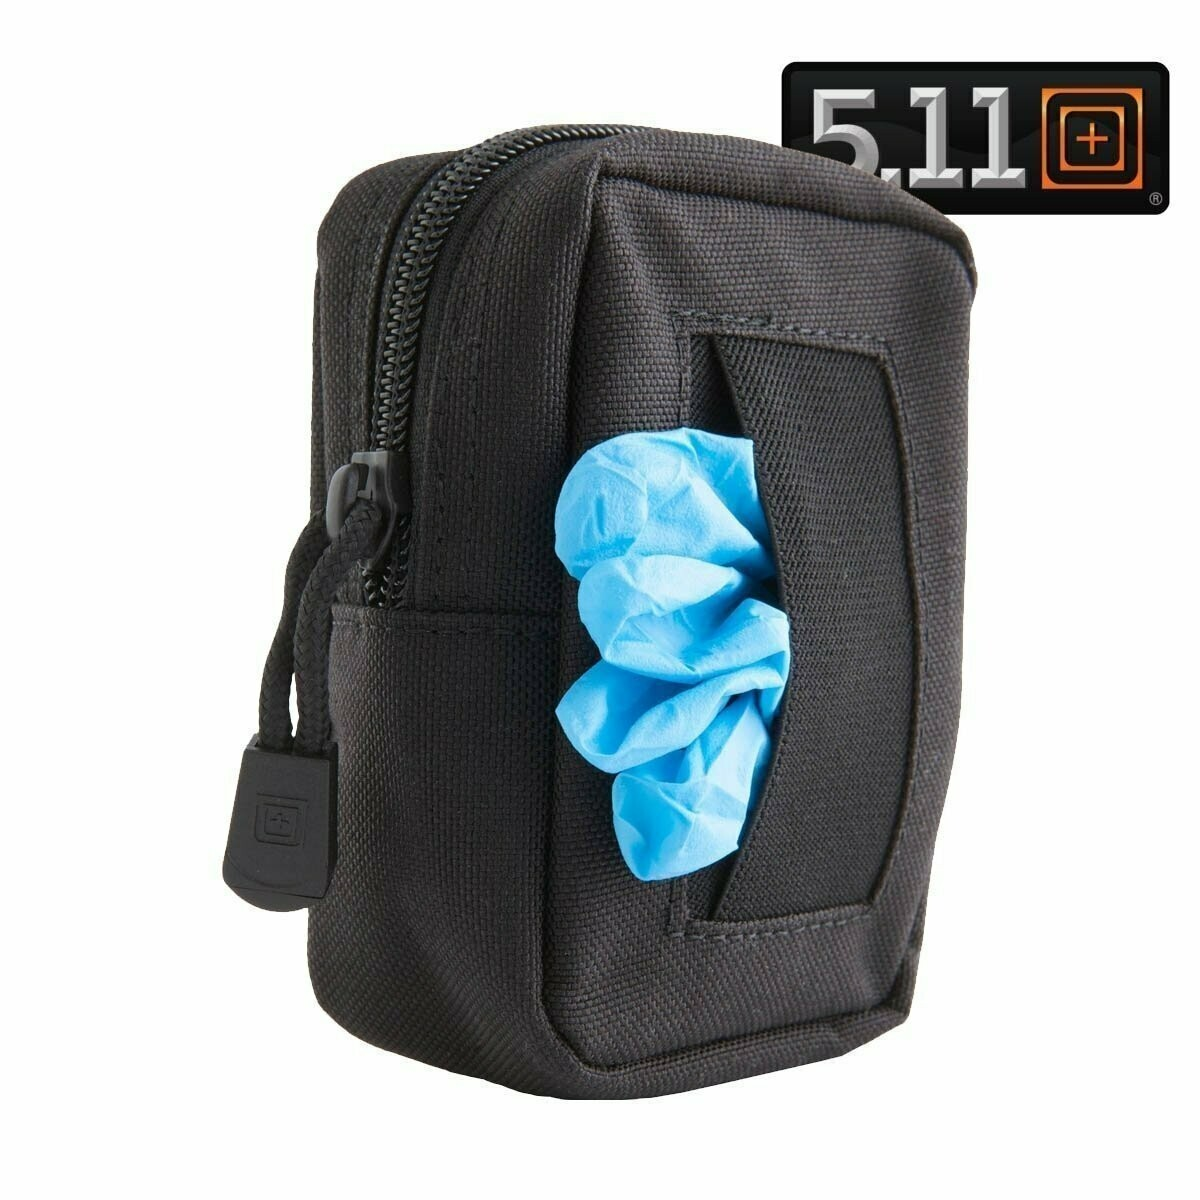 5.11 Tactical - Latex Glove Pouch